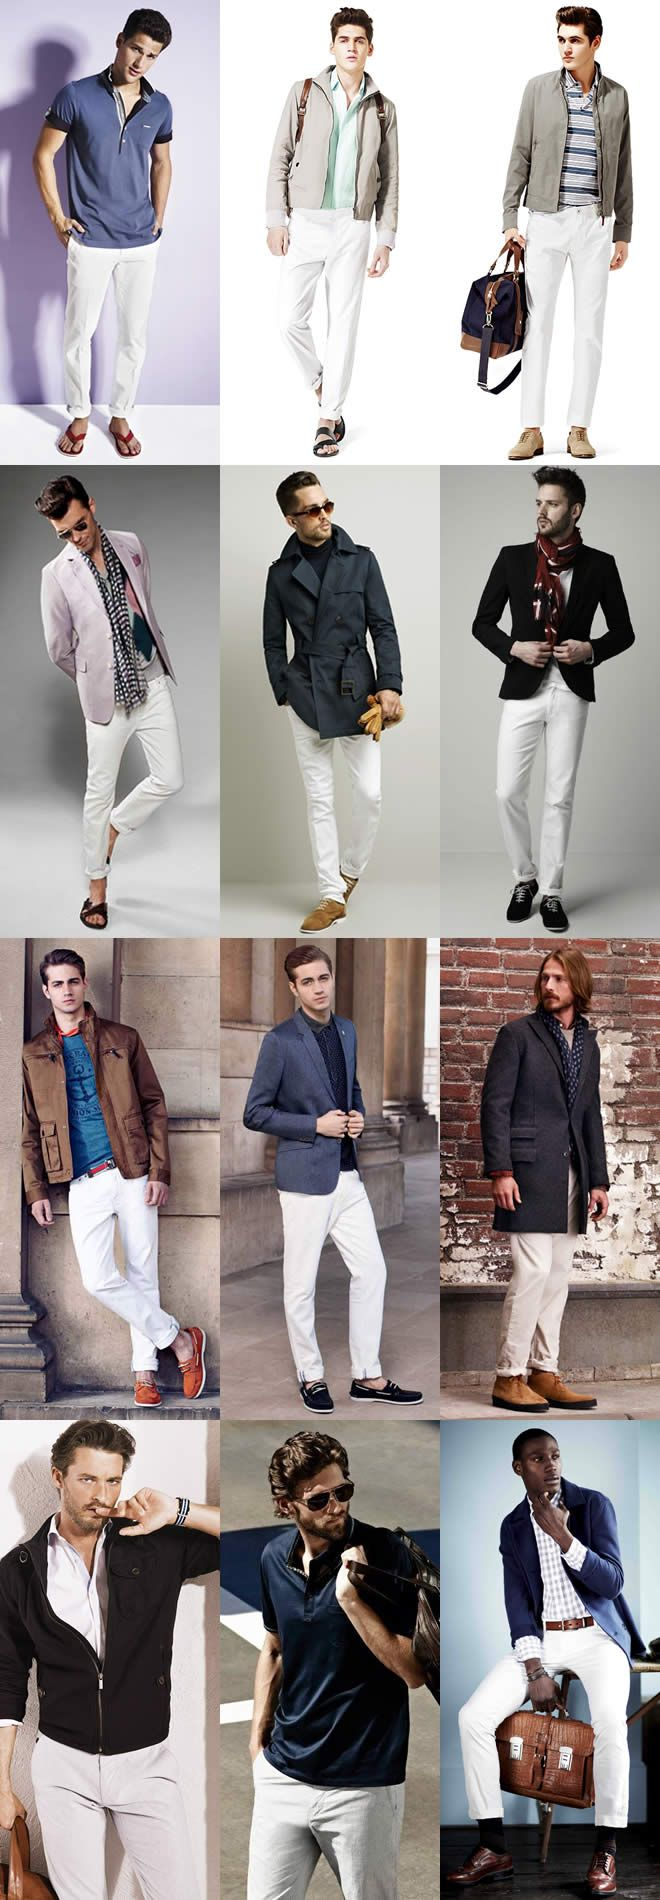 a lot of my gay friends are going for that white denim look. Trying to find something